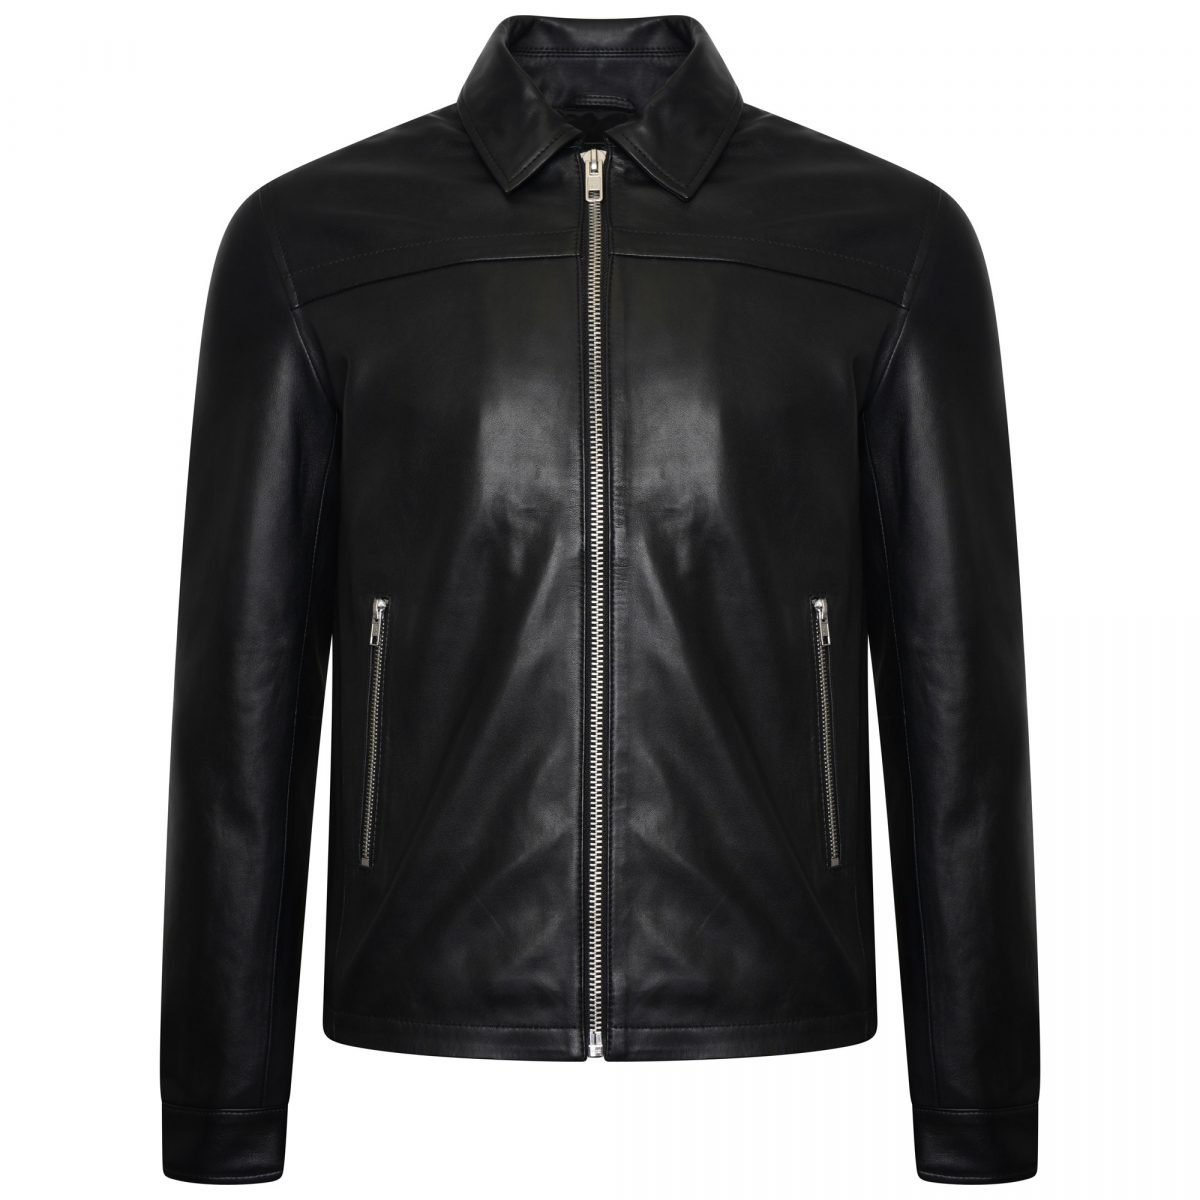 Image displays the men's real leather trucker jacket from Barneys Originals on an invisible mannequin. The jacket is a trucker style with a collar and two silver zipped pockets.